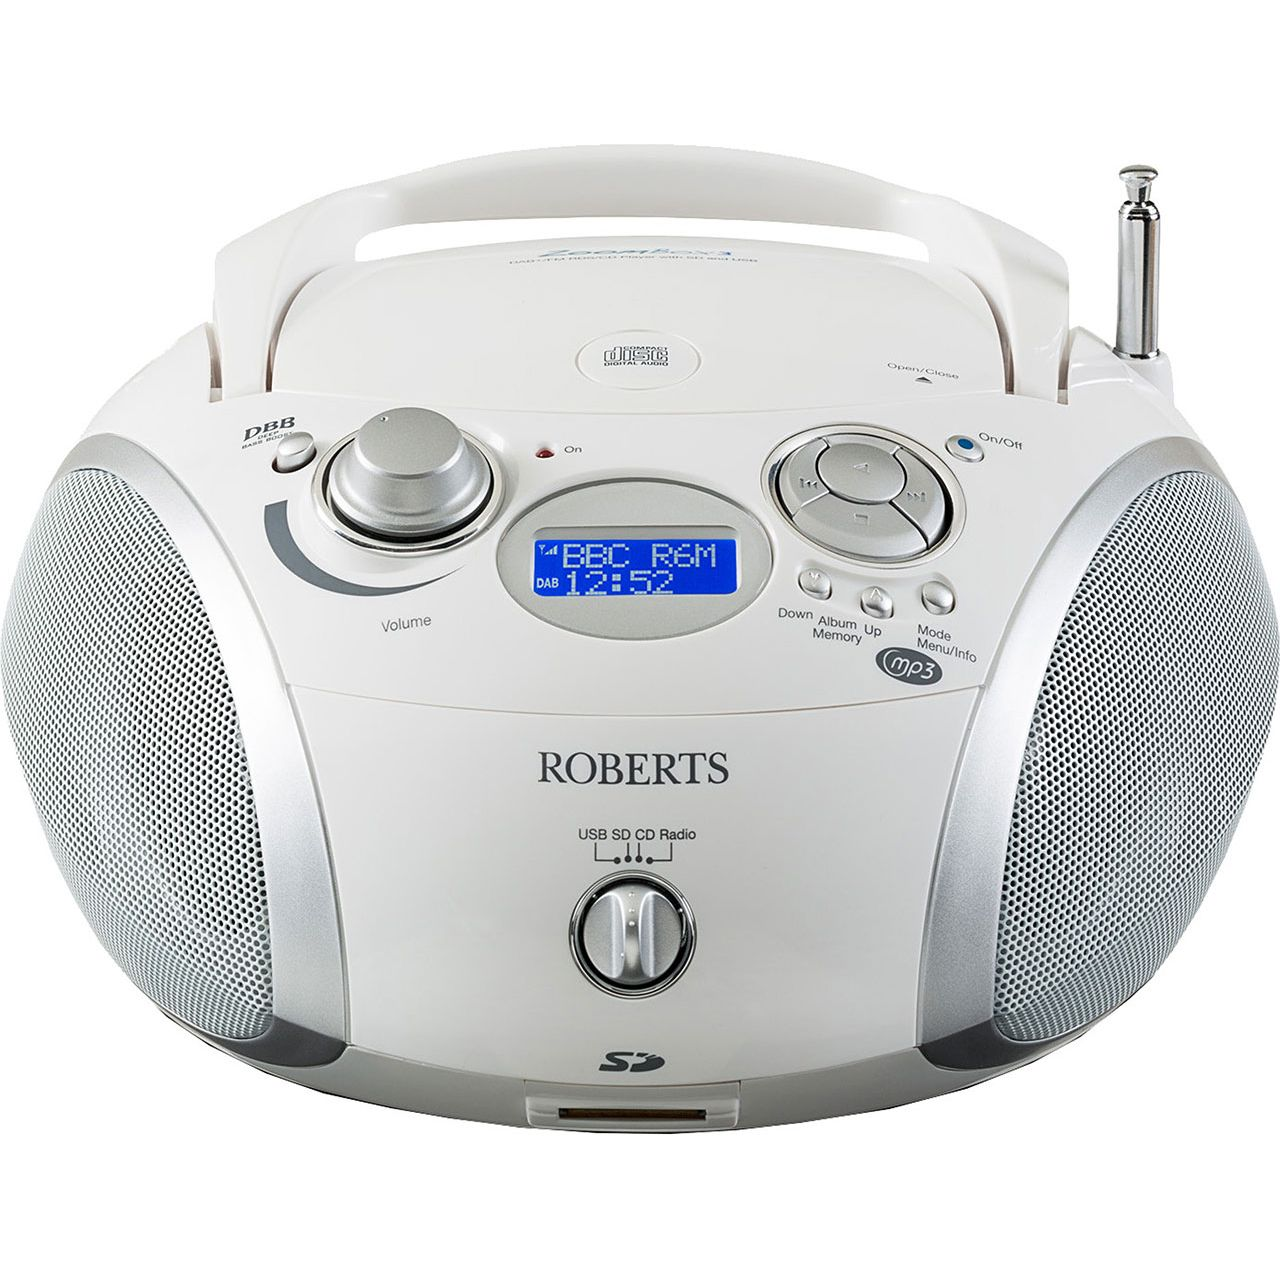 roberts radio zoombox 3 dab dab fm rds cd player with sd. Black Bedroom Furniture Sets. Home Design Ideas